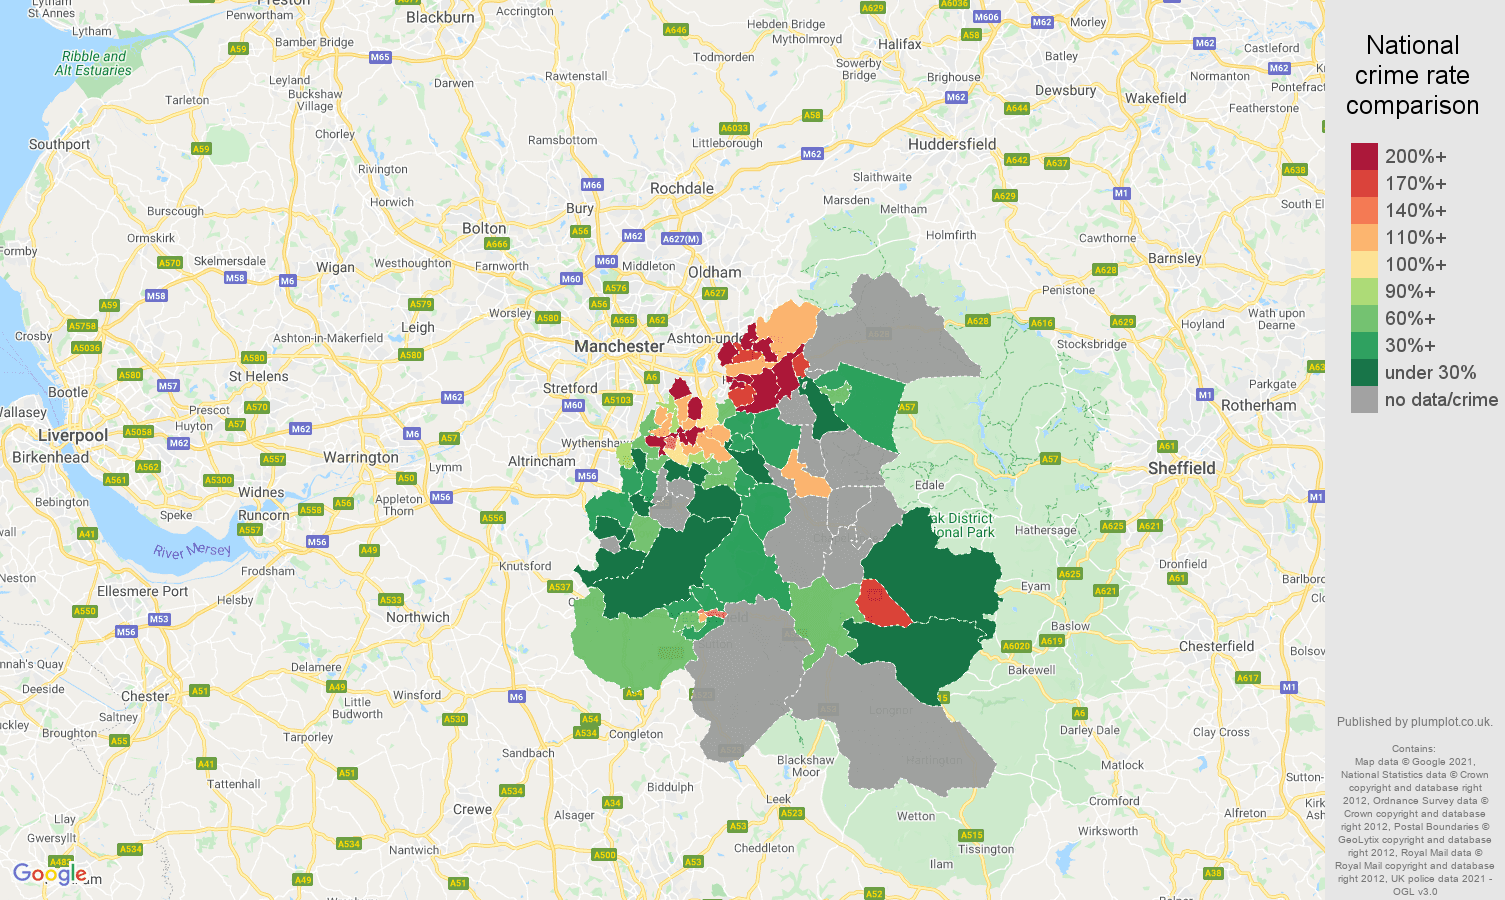 Stockport possession of weapons crime rate comparison map